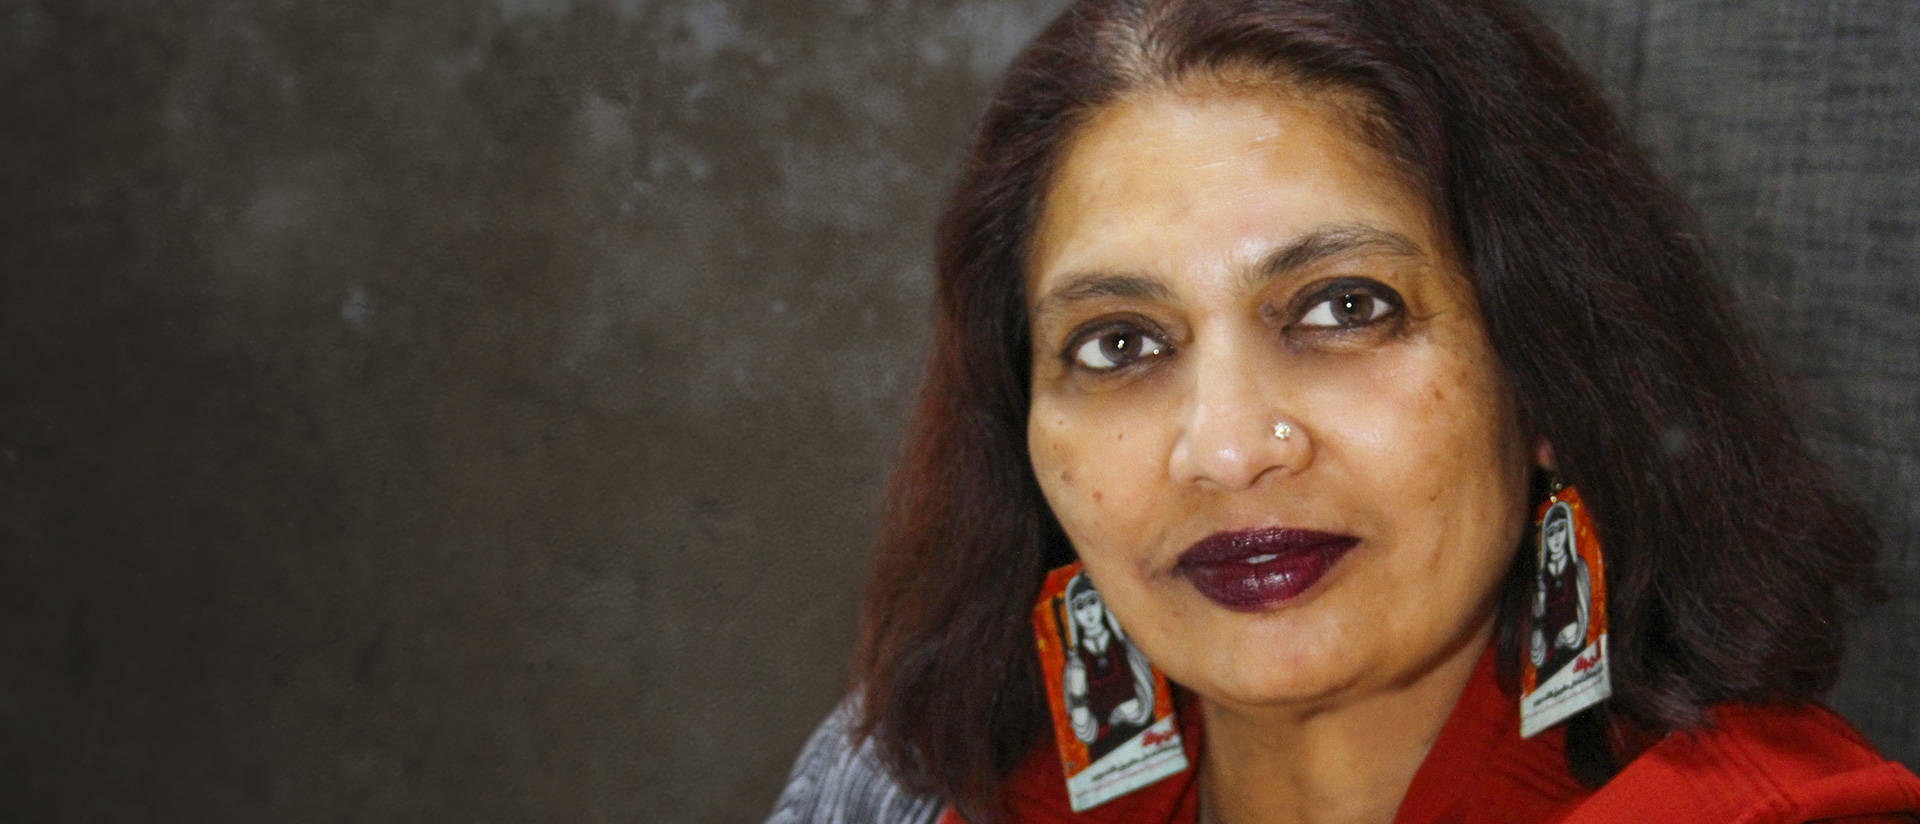 Dr. Chandra Talpade Mohanty. professor of women's and gender studies at Syracuse